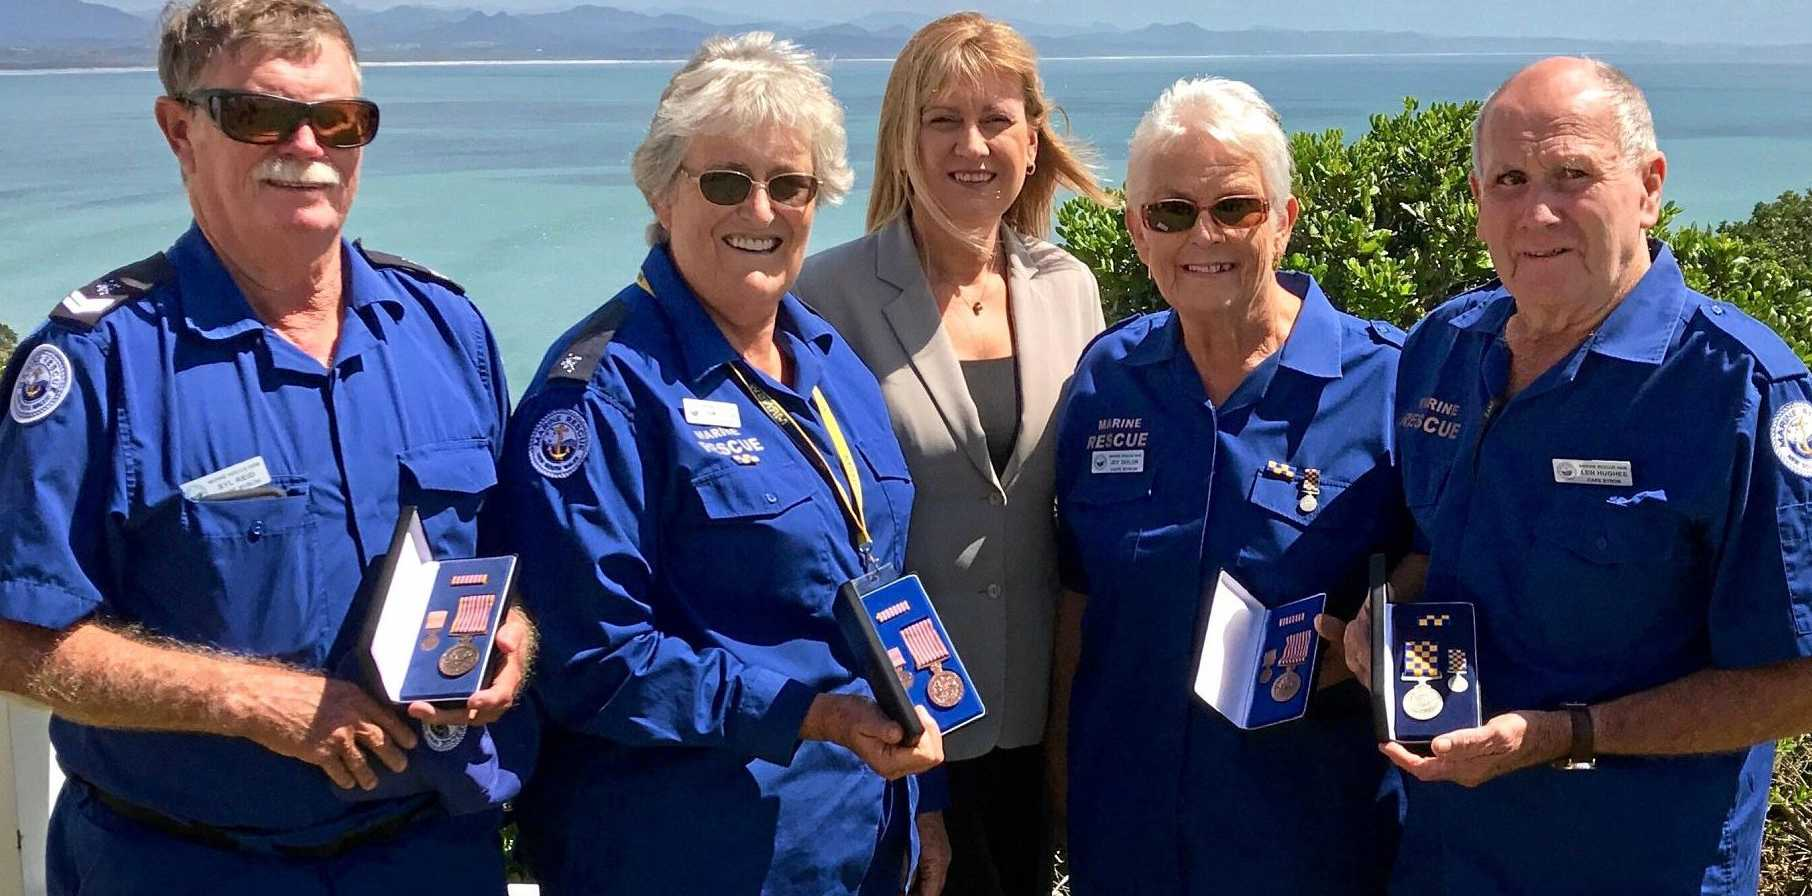 WELL-DESERVED HONOUR: Local marine rescue volunteers Syl Reid, Pam Ditton, Joy Taylor and Len Hughes receive their awards from MP Justine Elliot.